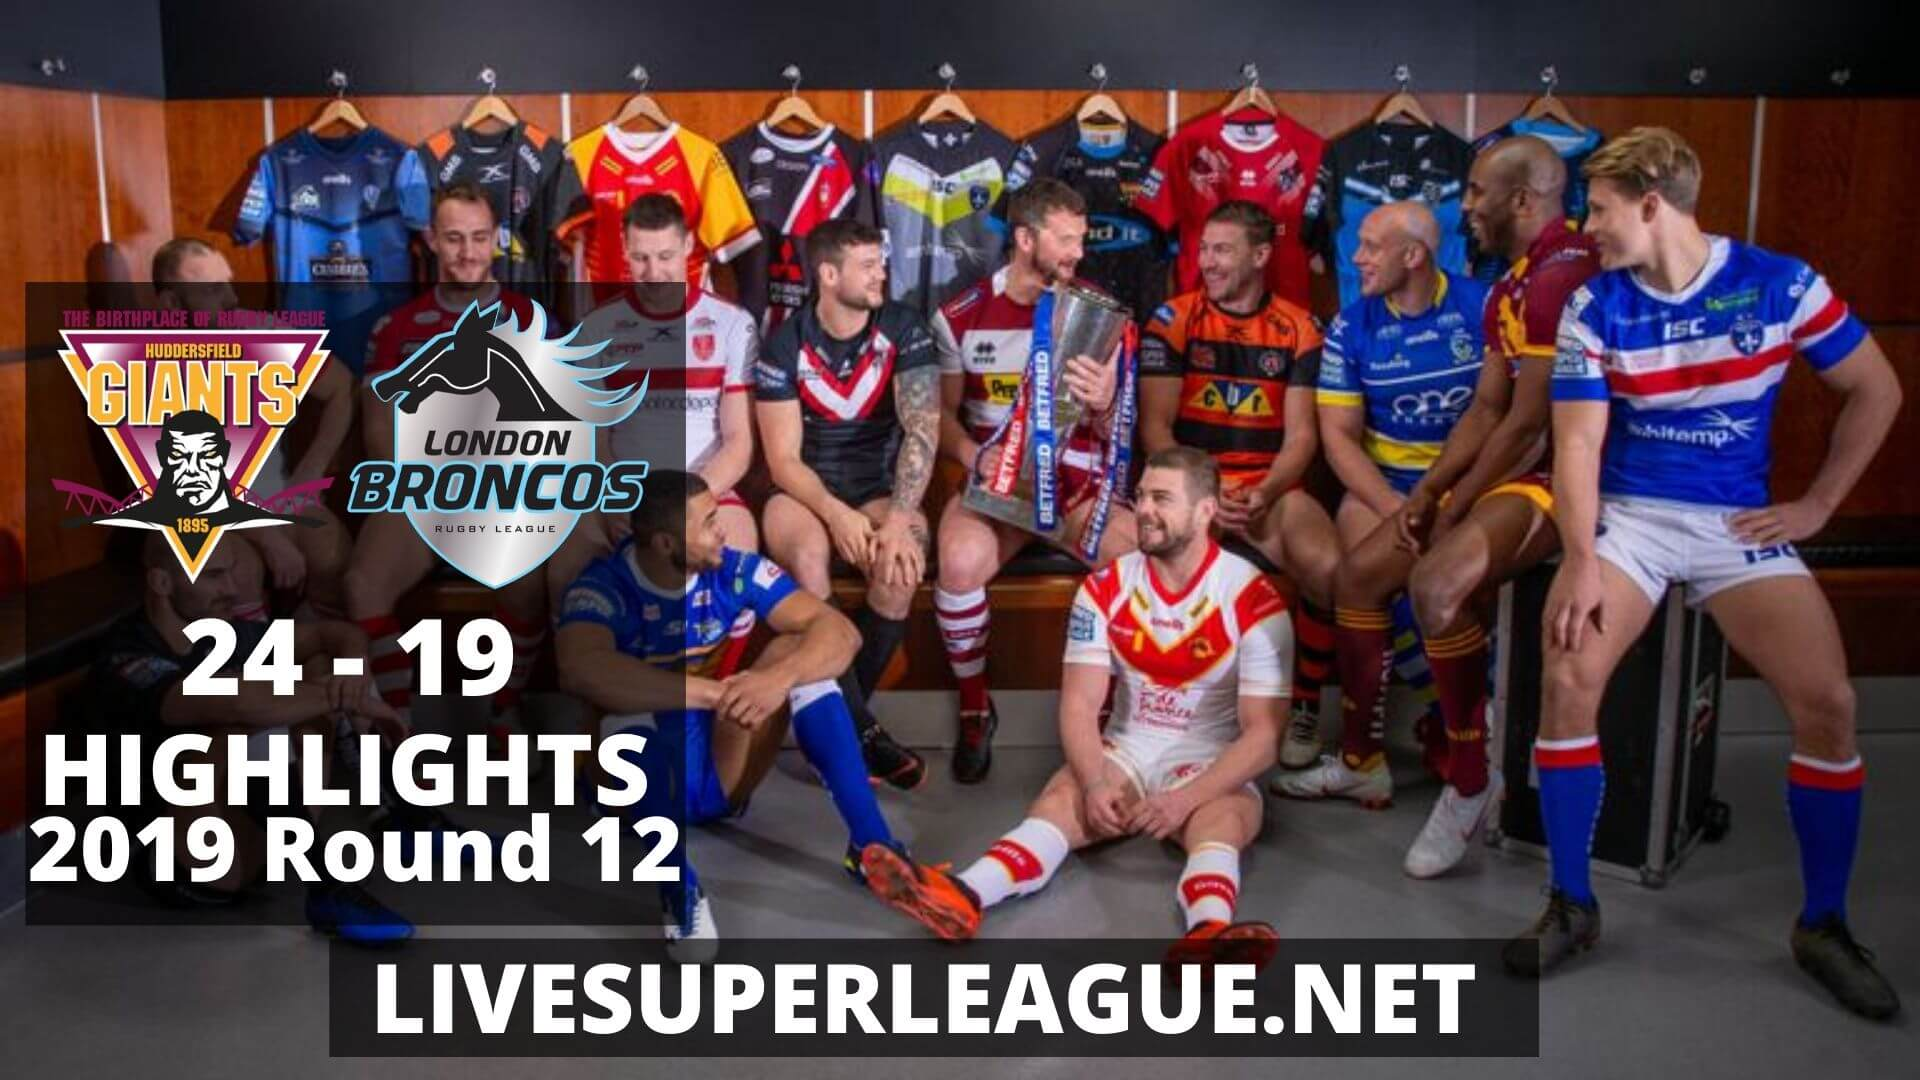 Huddersfield Giants Vs London Broncos Highlights 2019 Round 12